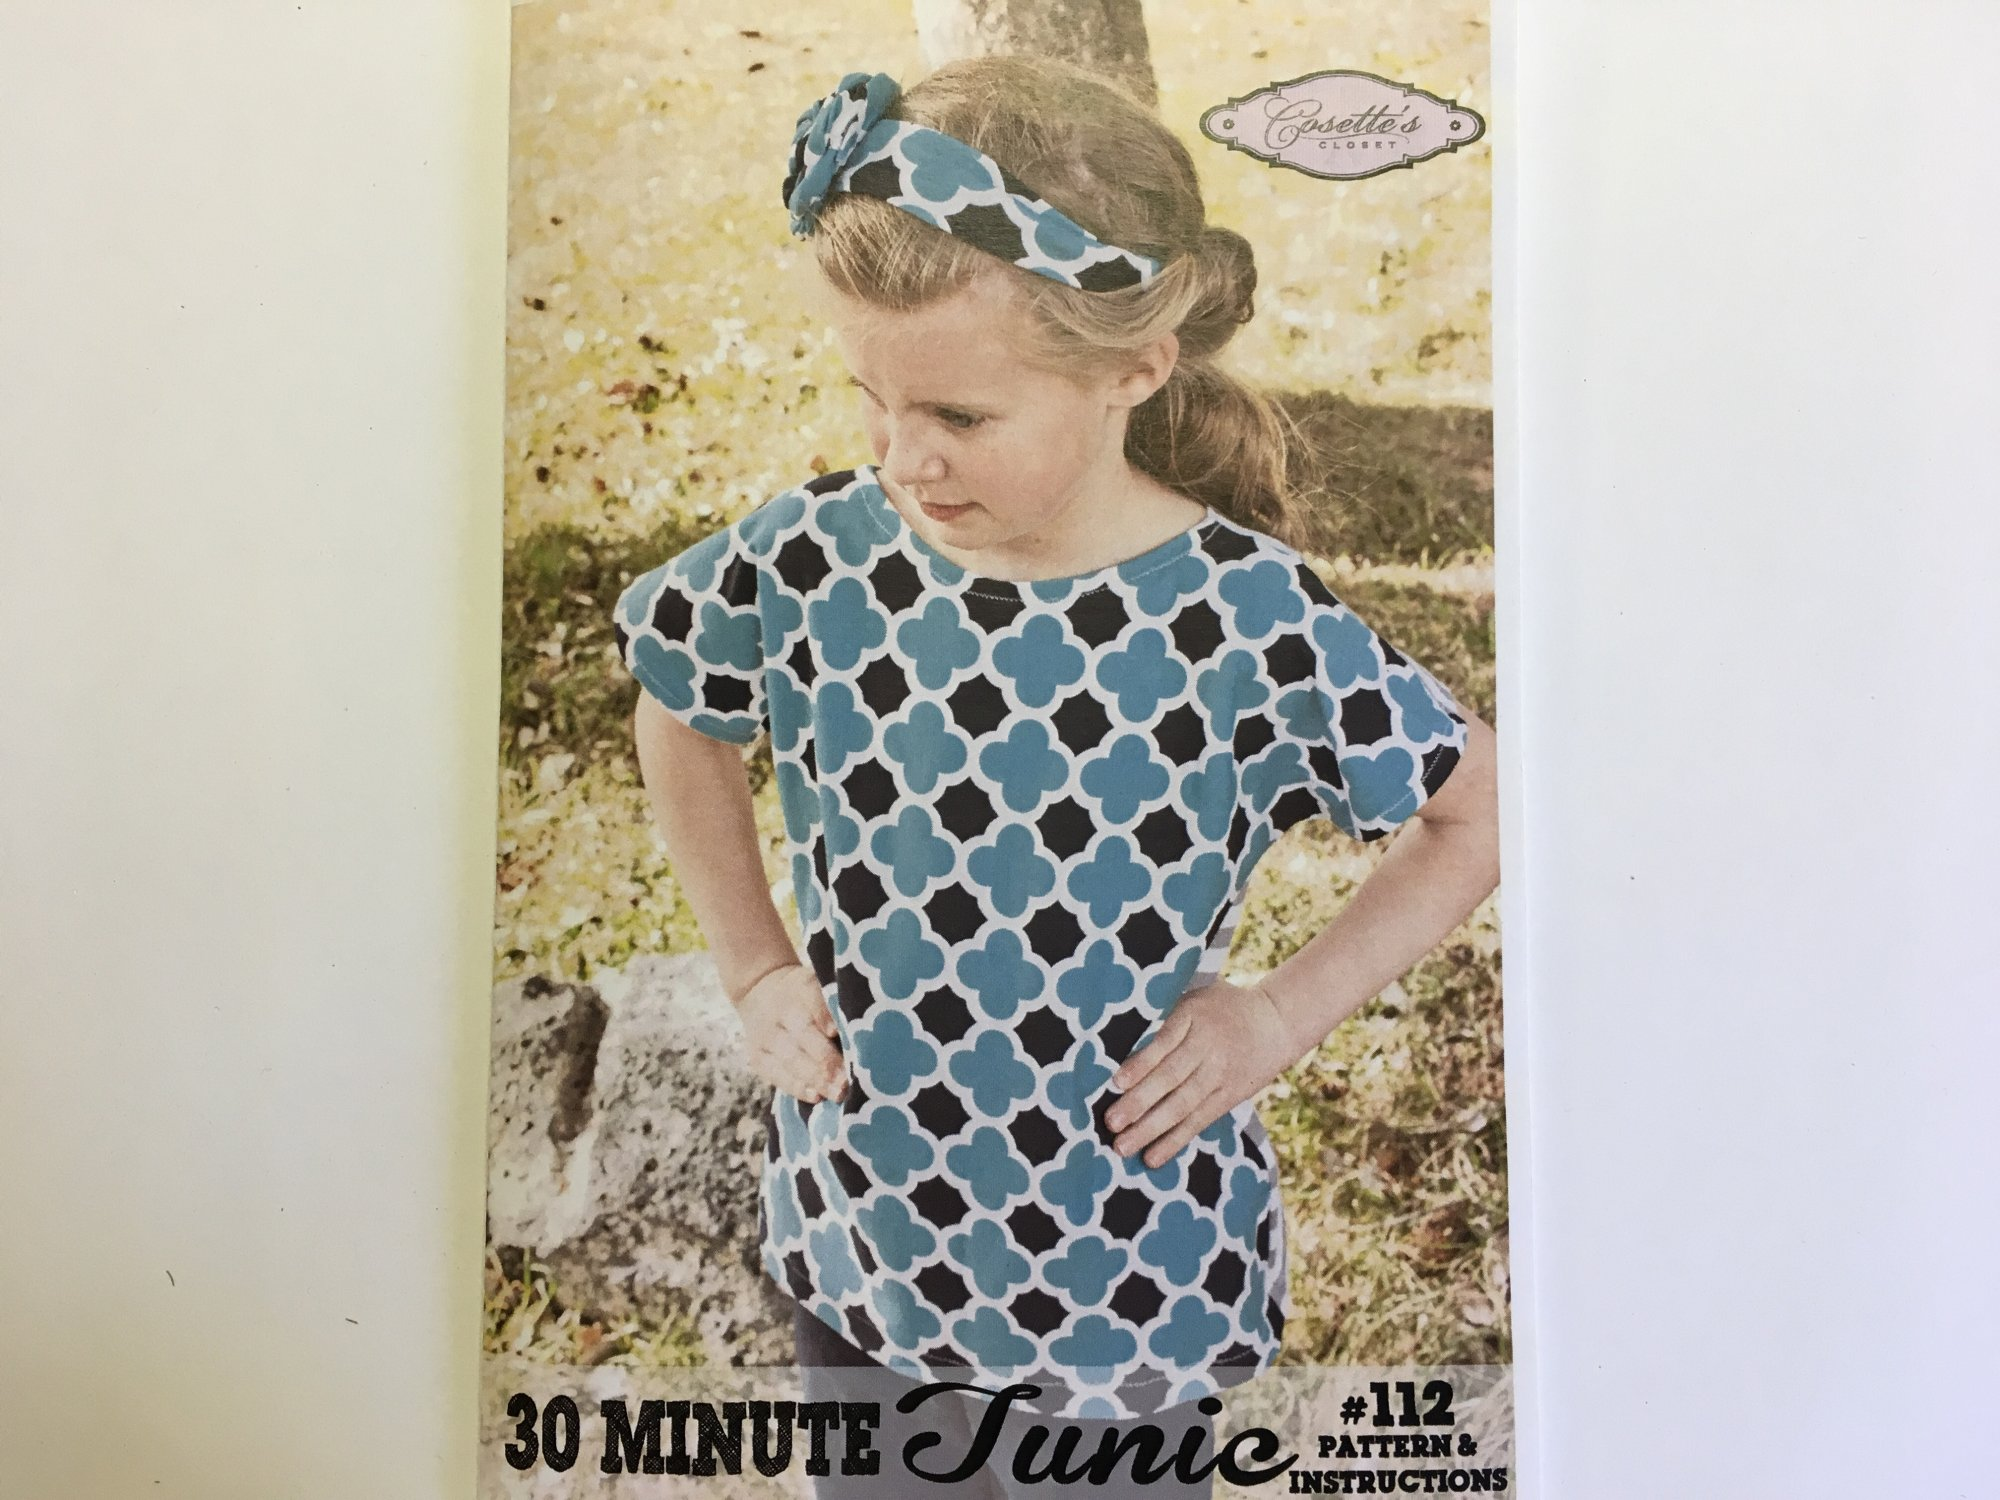 30 MINUTE TUNIC by Cosettes  #112